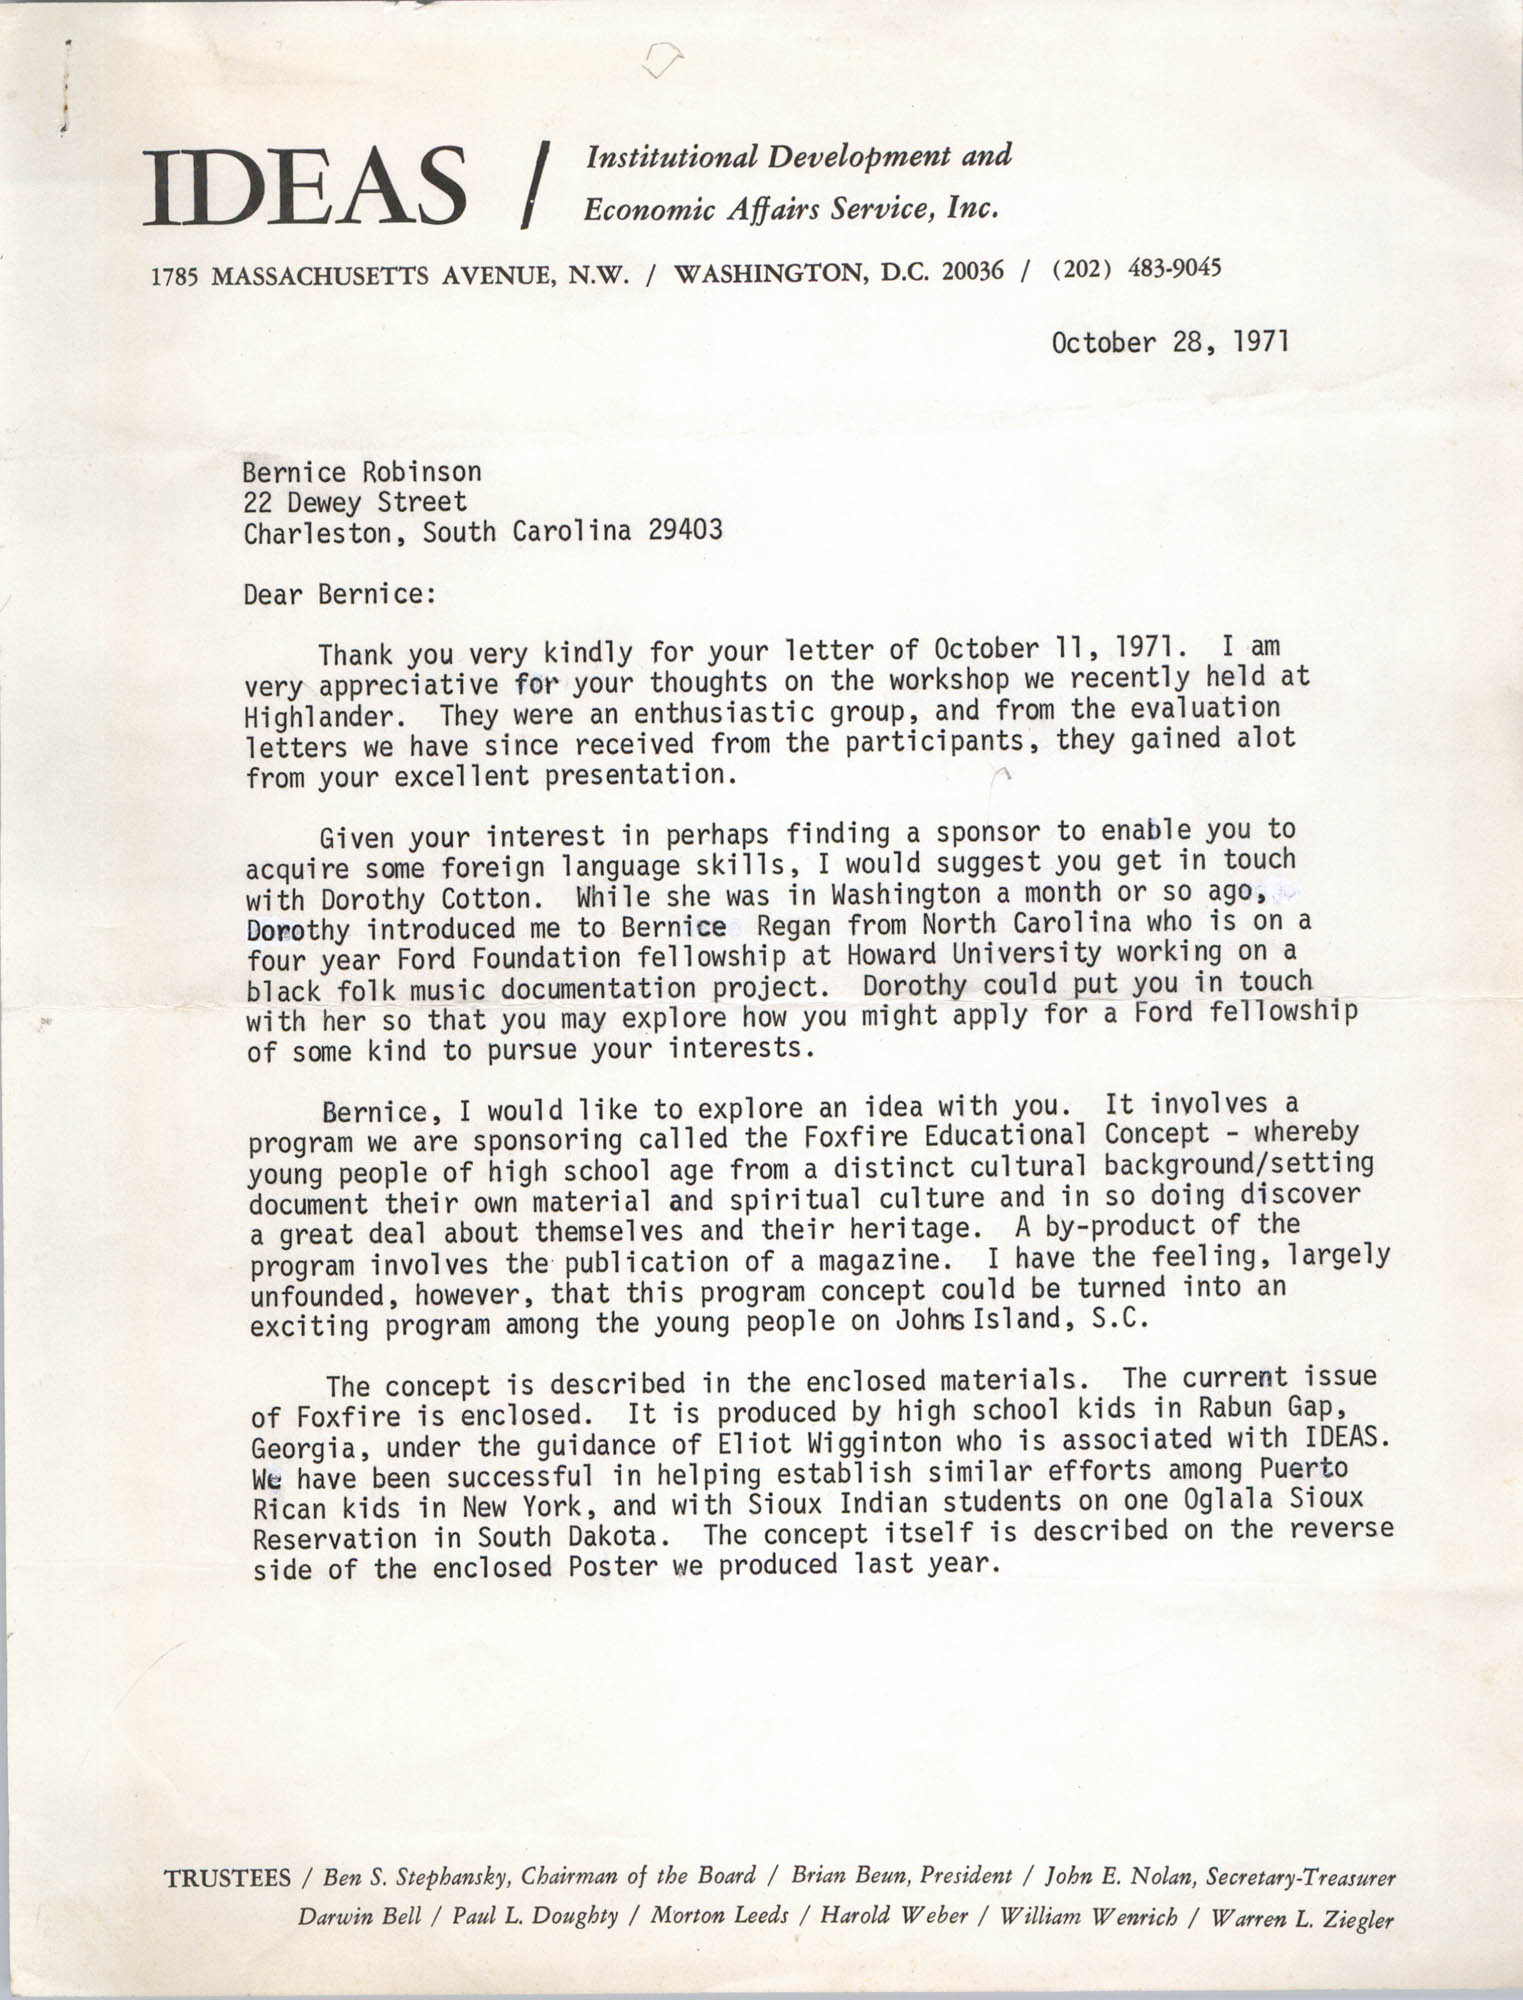 Letter from Brian Beun to Bernice Robinson, October 28, 1971